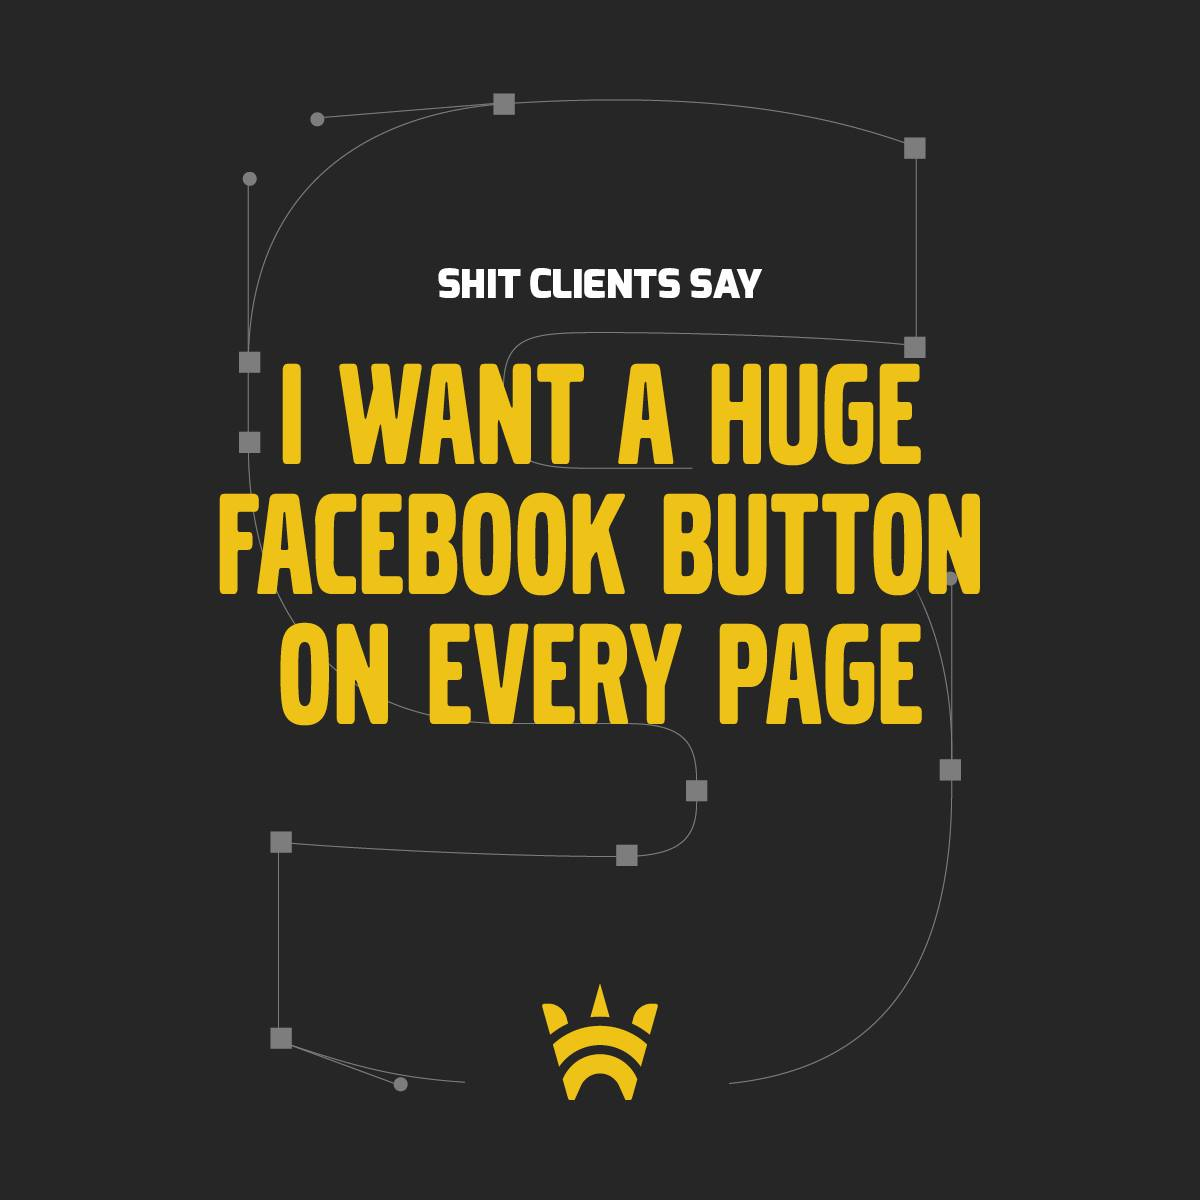 I want a huge Facebook button on every page